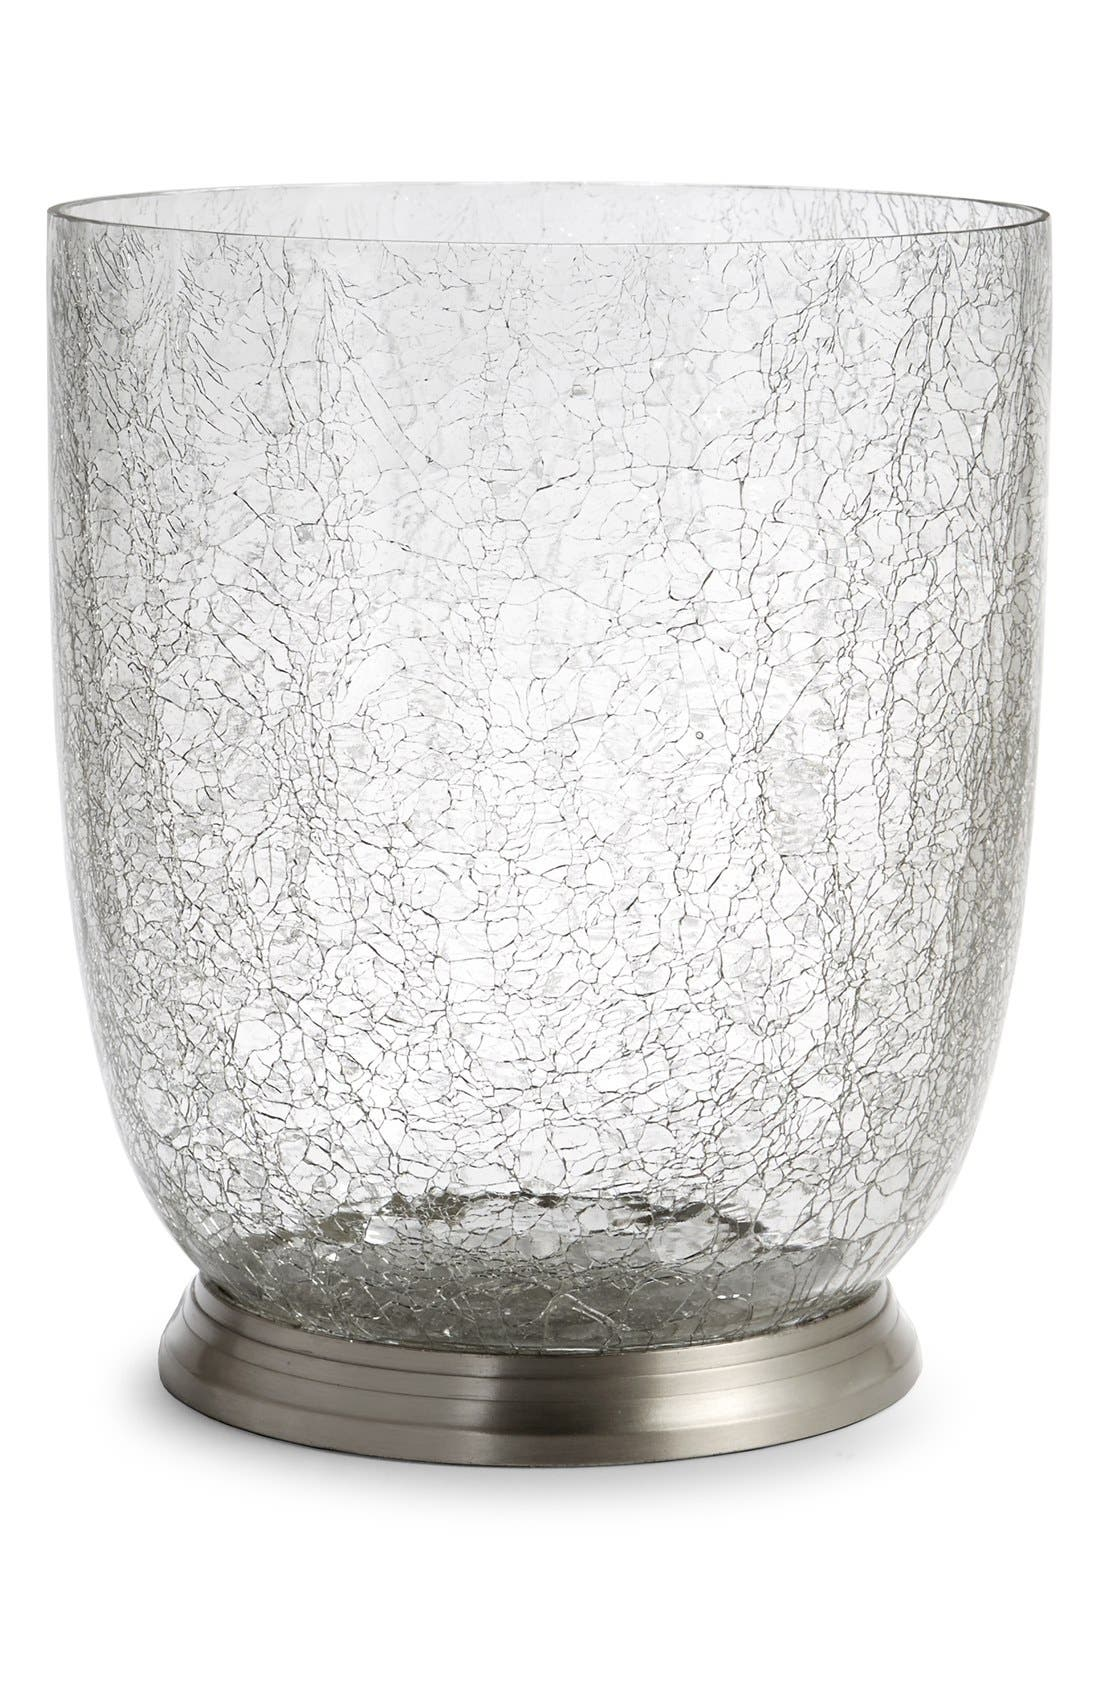 Main Image - Paradigm Trends 'Heirloom Crackle' Wastebasket